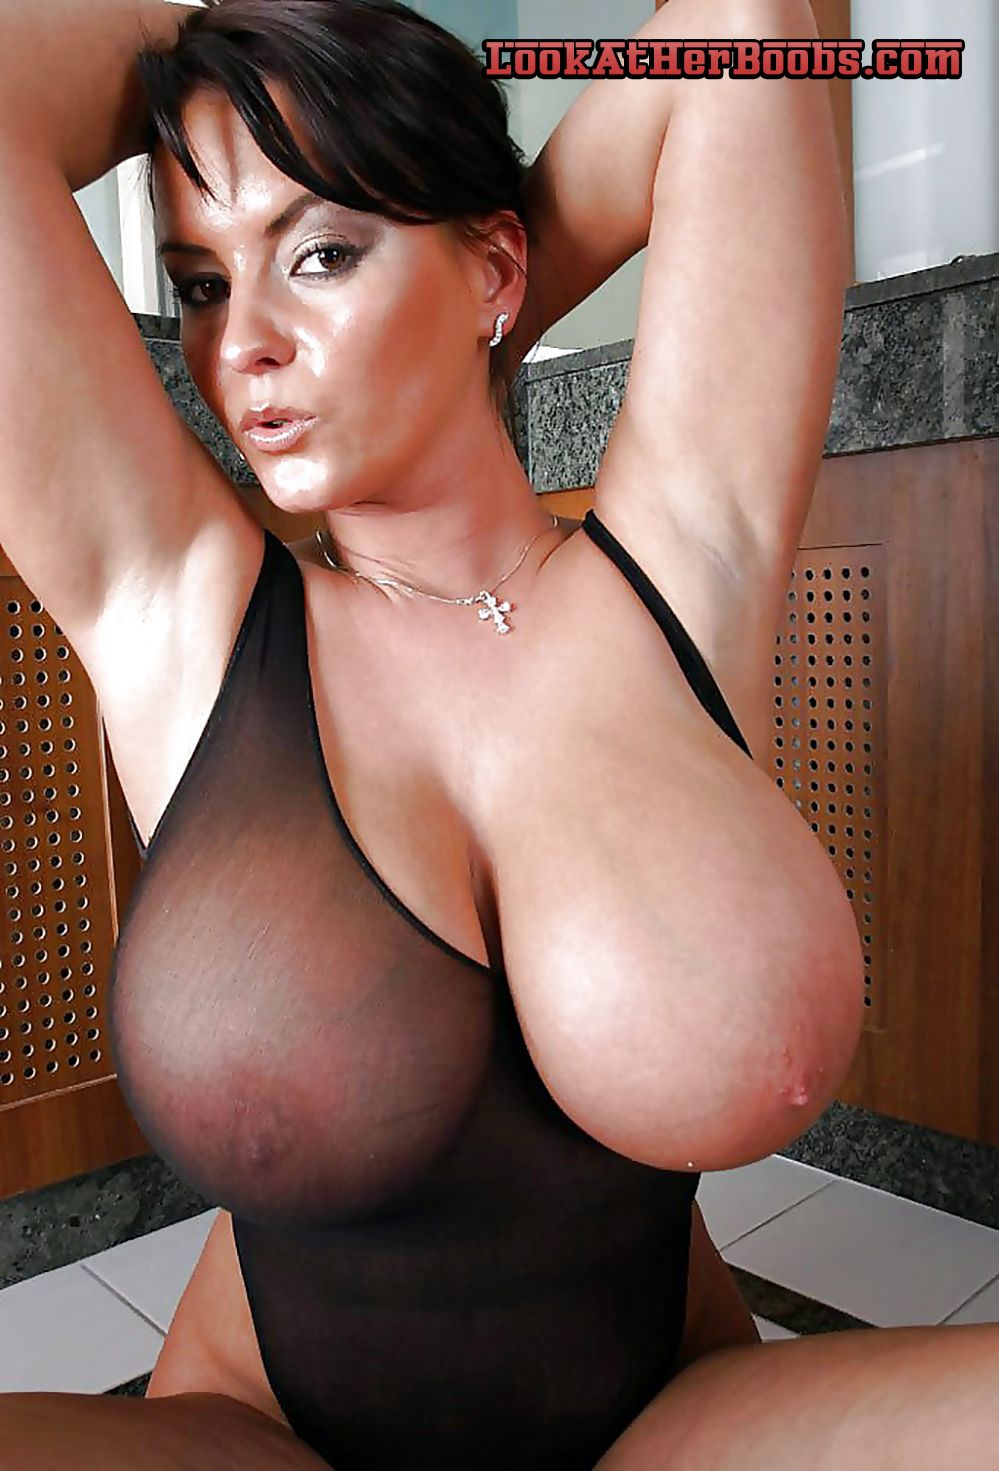 nude women massive tits.girls flashing boobs. bbws flash huge